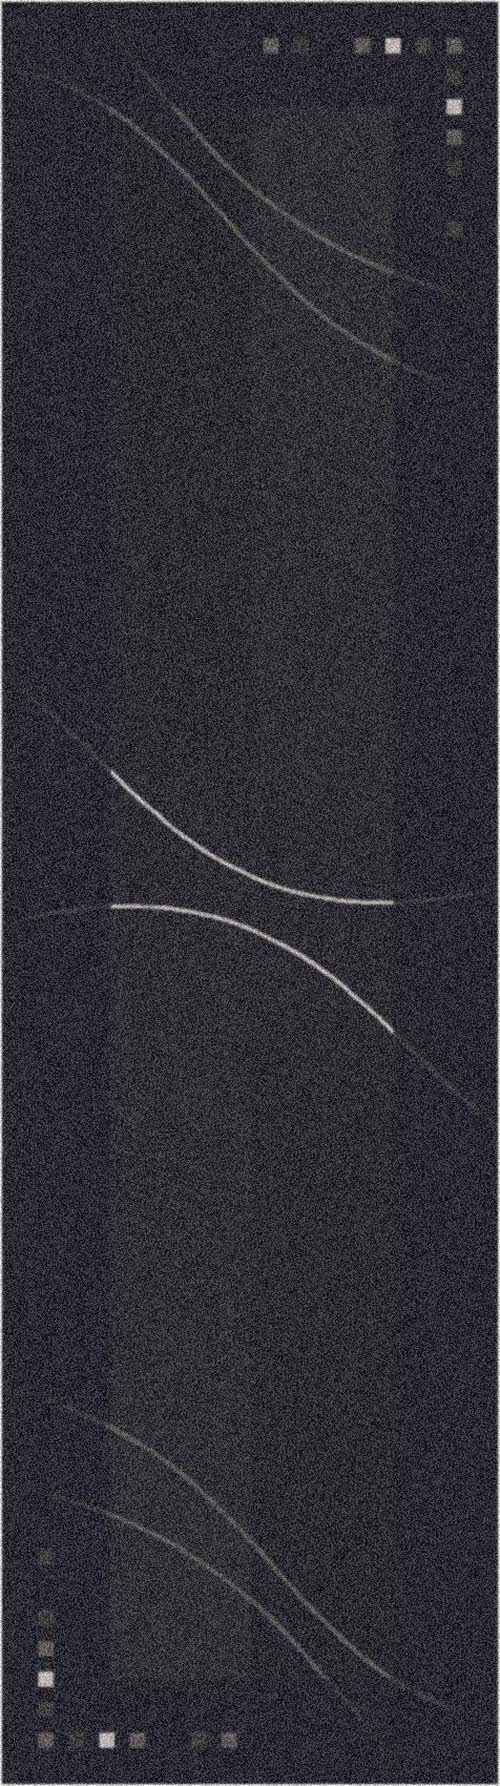 Ebony (24)  Contemporary / Modern Area Rug